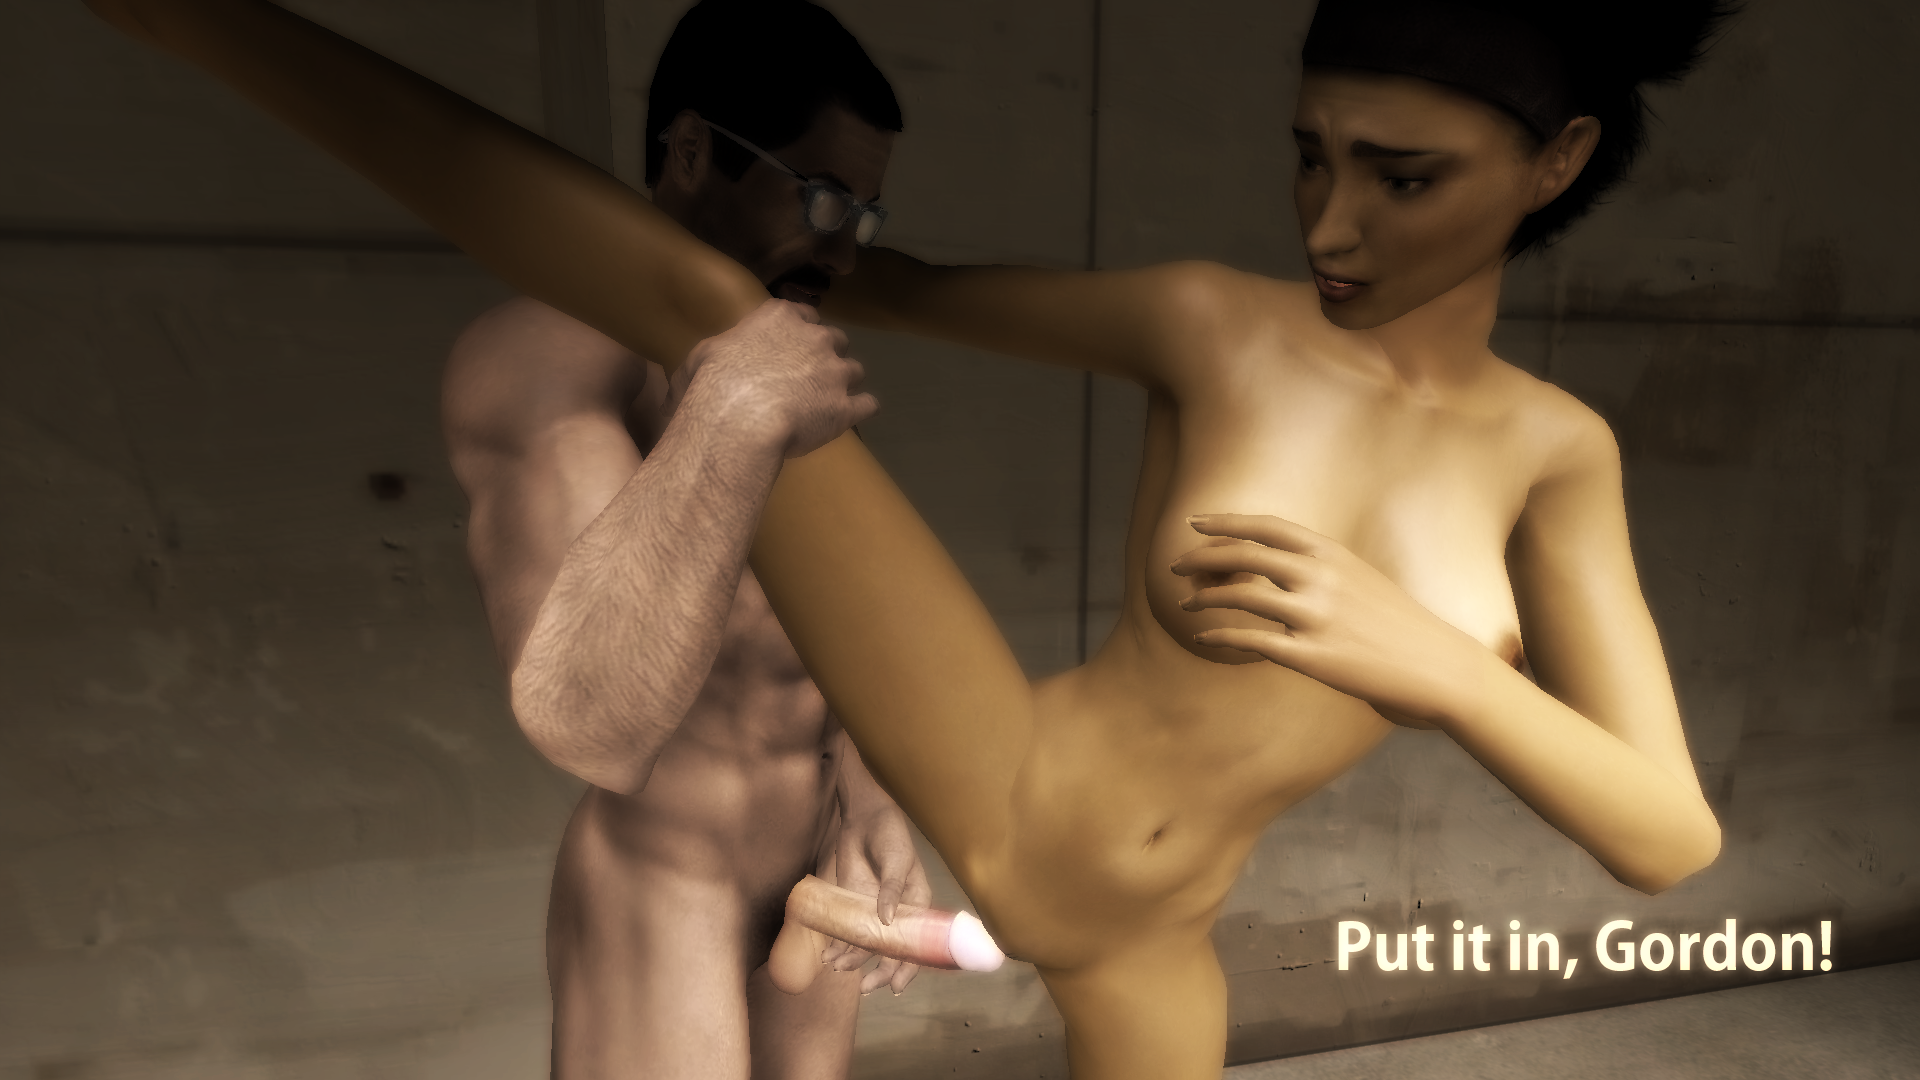 Halflife porn video xxx photos